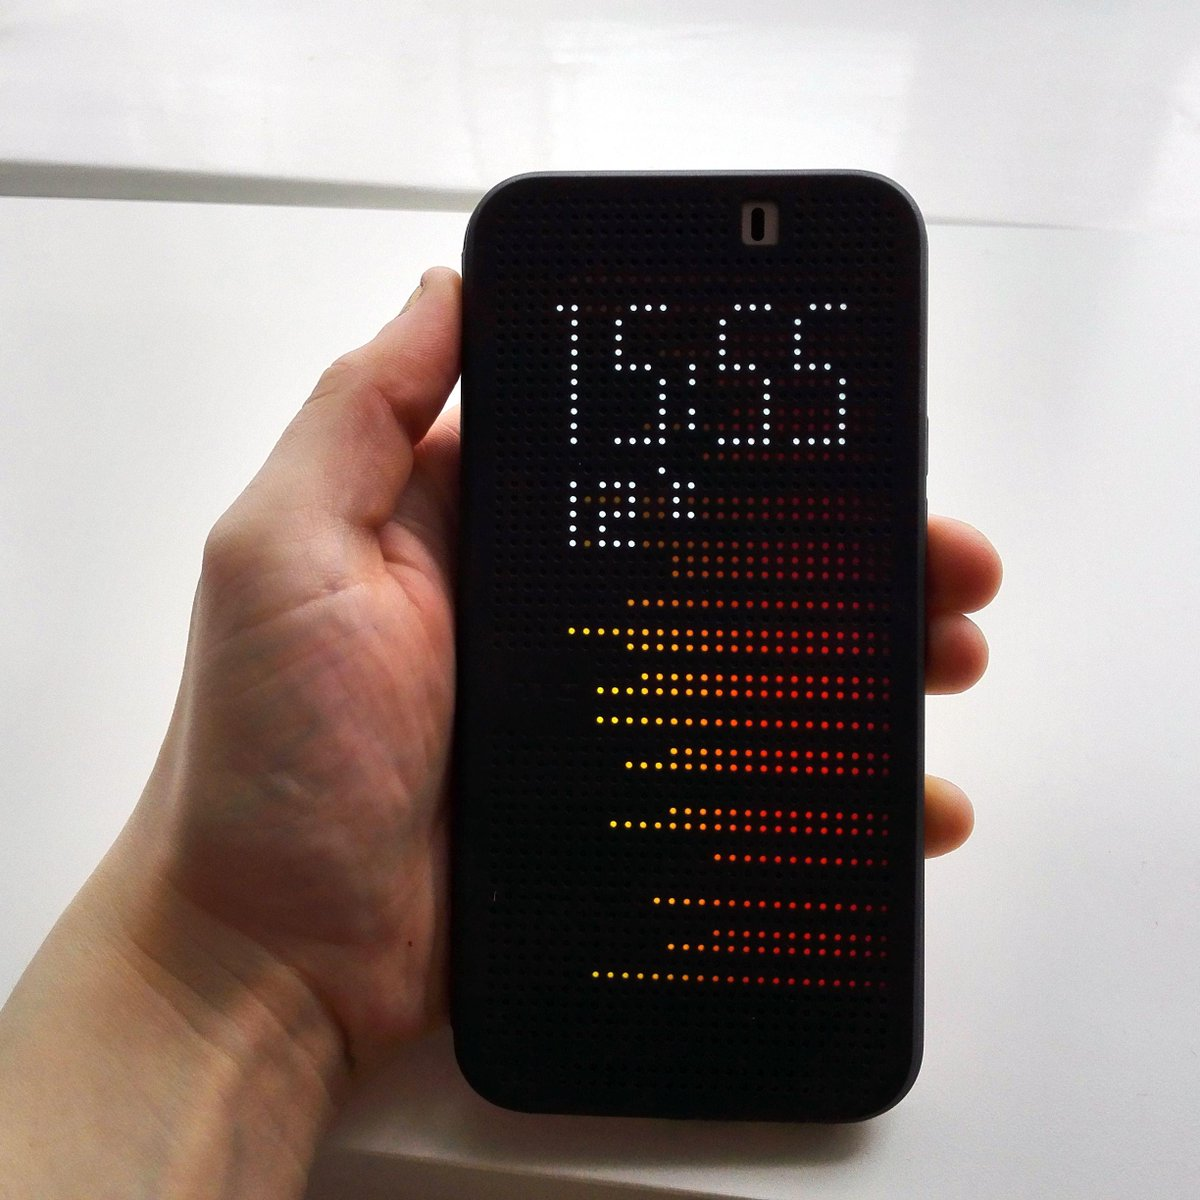 We review the @HTC_UK One M9 Dot View case, the phone case you can play games on http://t.co/2mb8YjQL7f http://t.co/7BqB3EUMjb